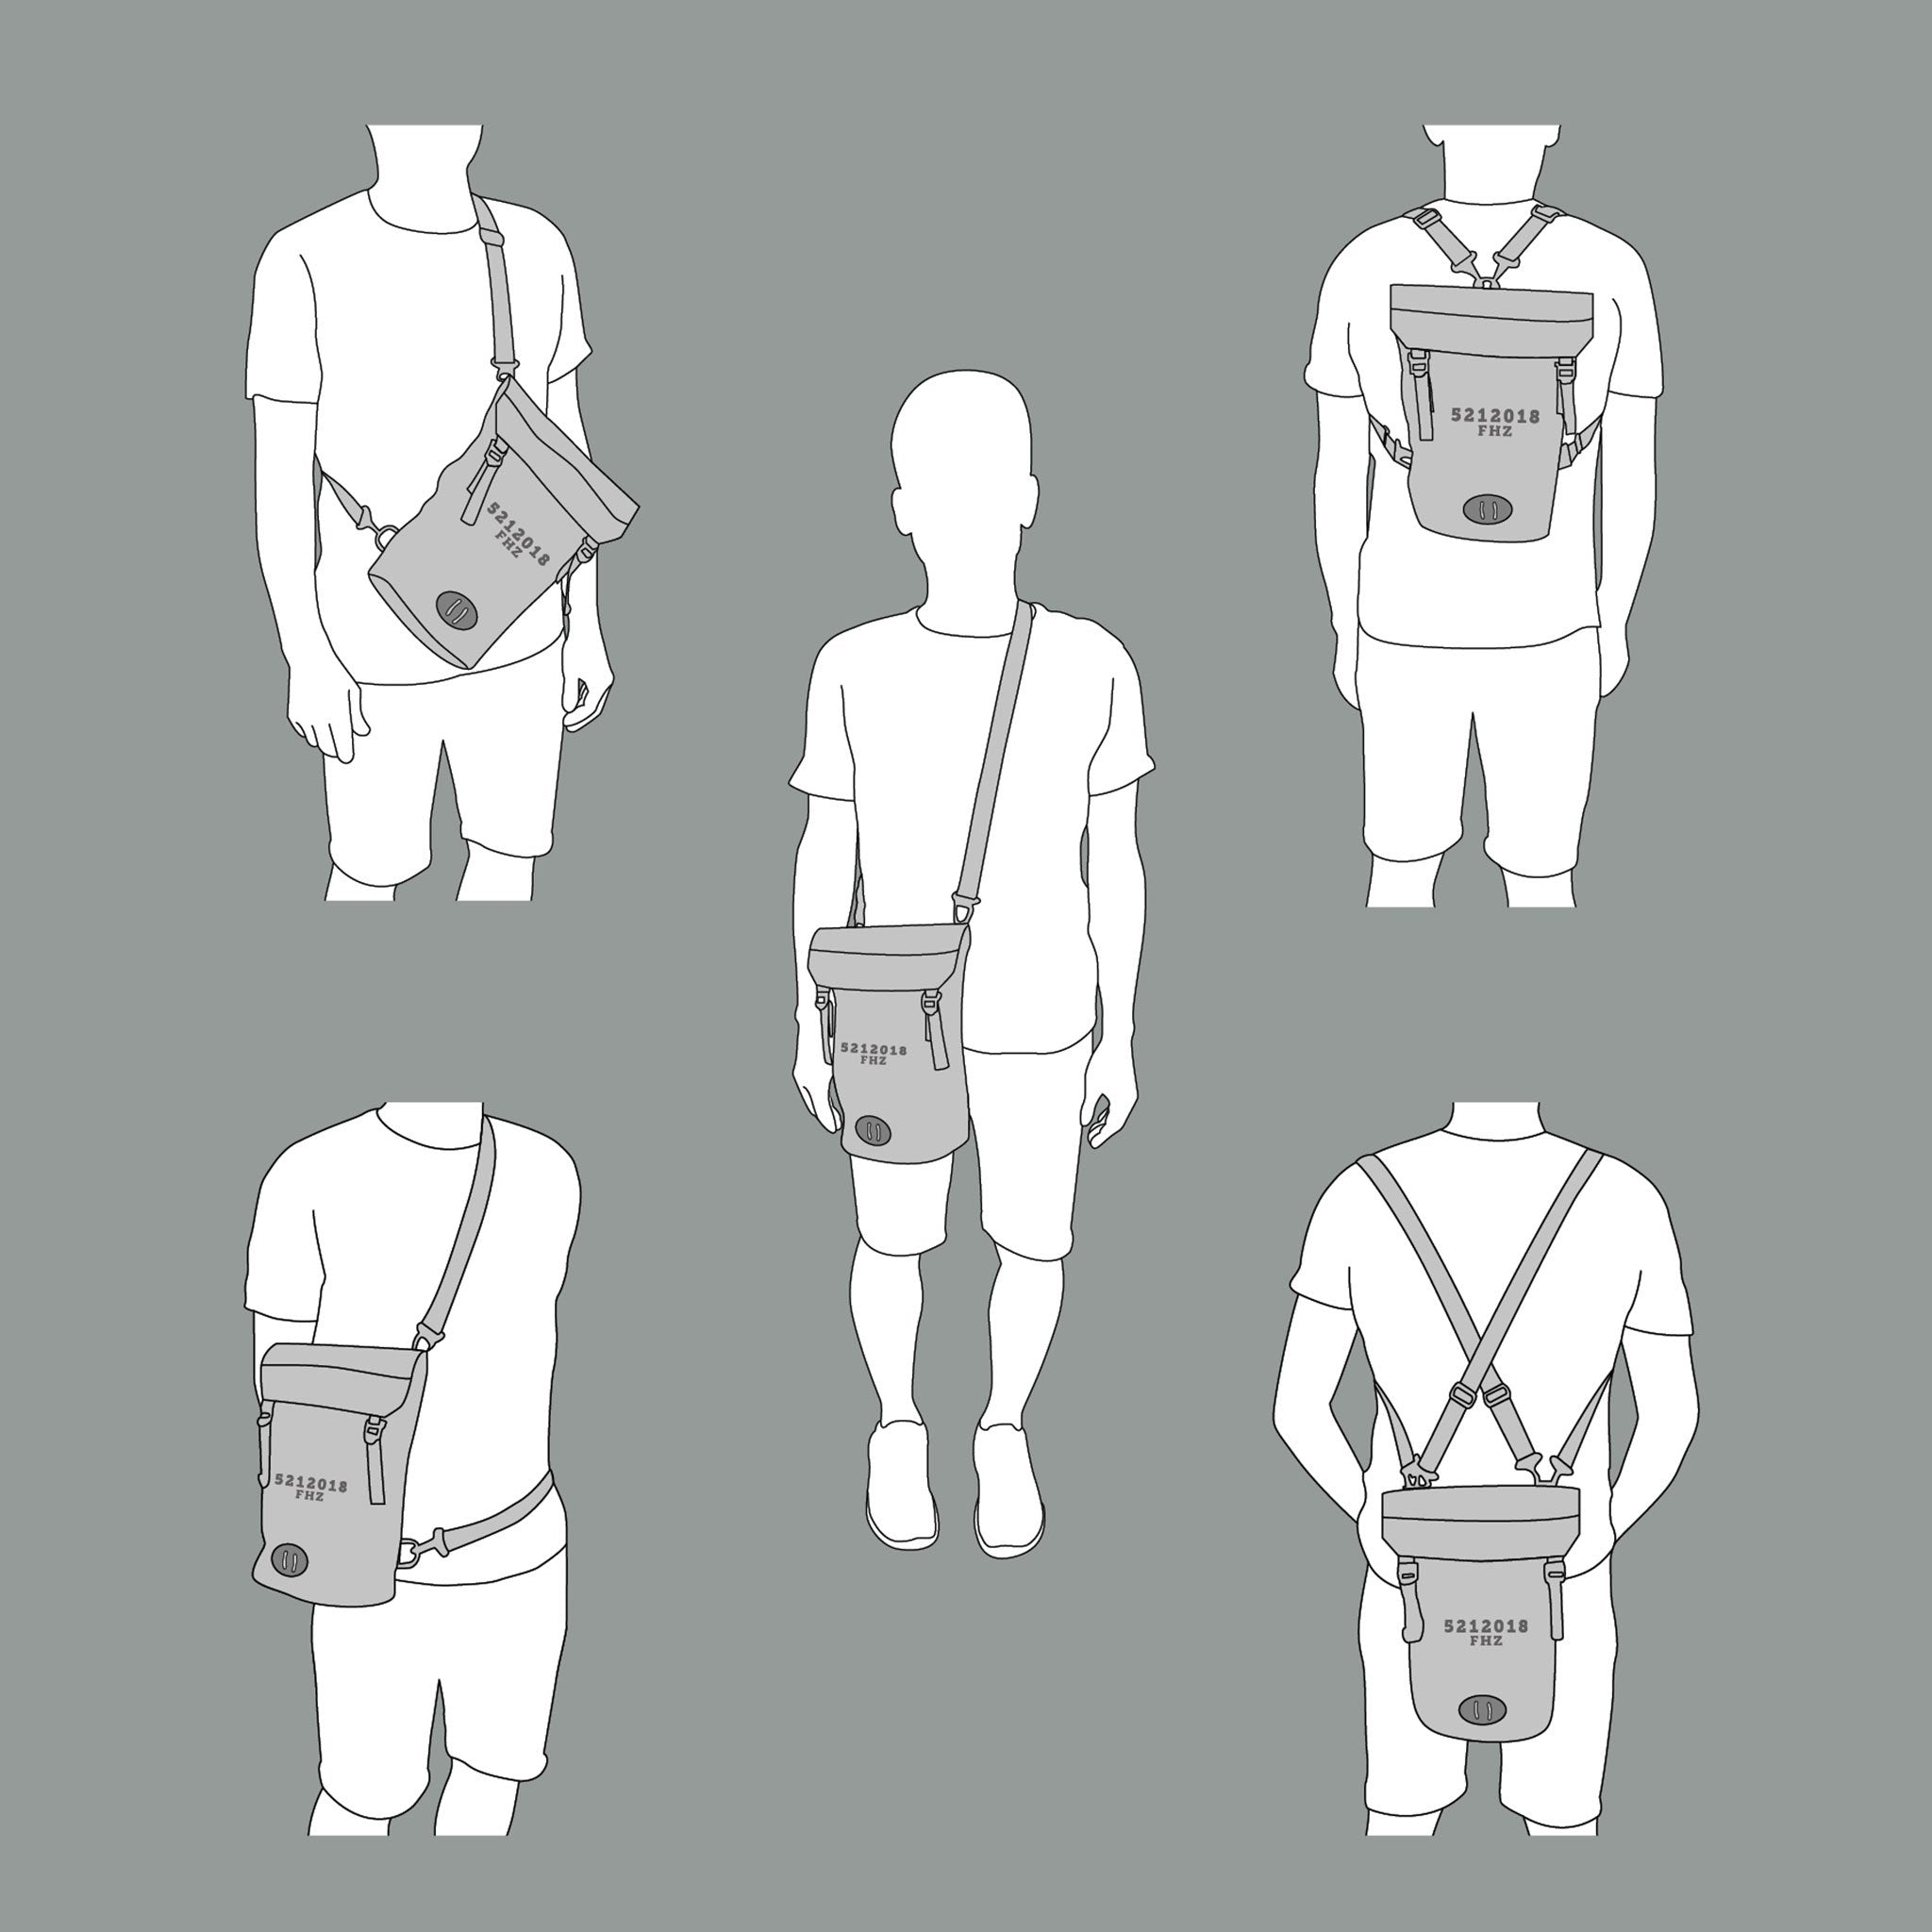 Illustration showing 5 different ways to wear the Fierce Hazel Evolution Convertible backpack